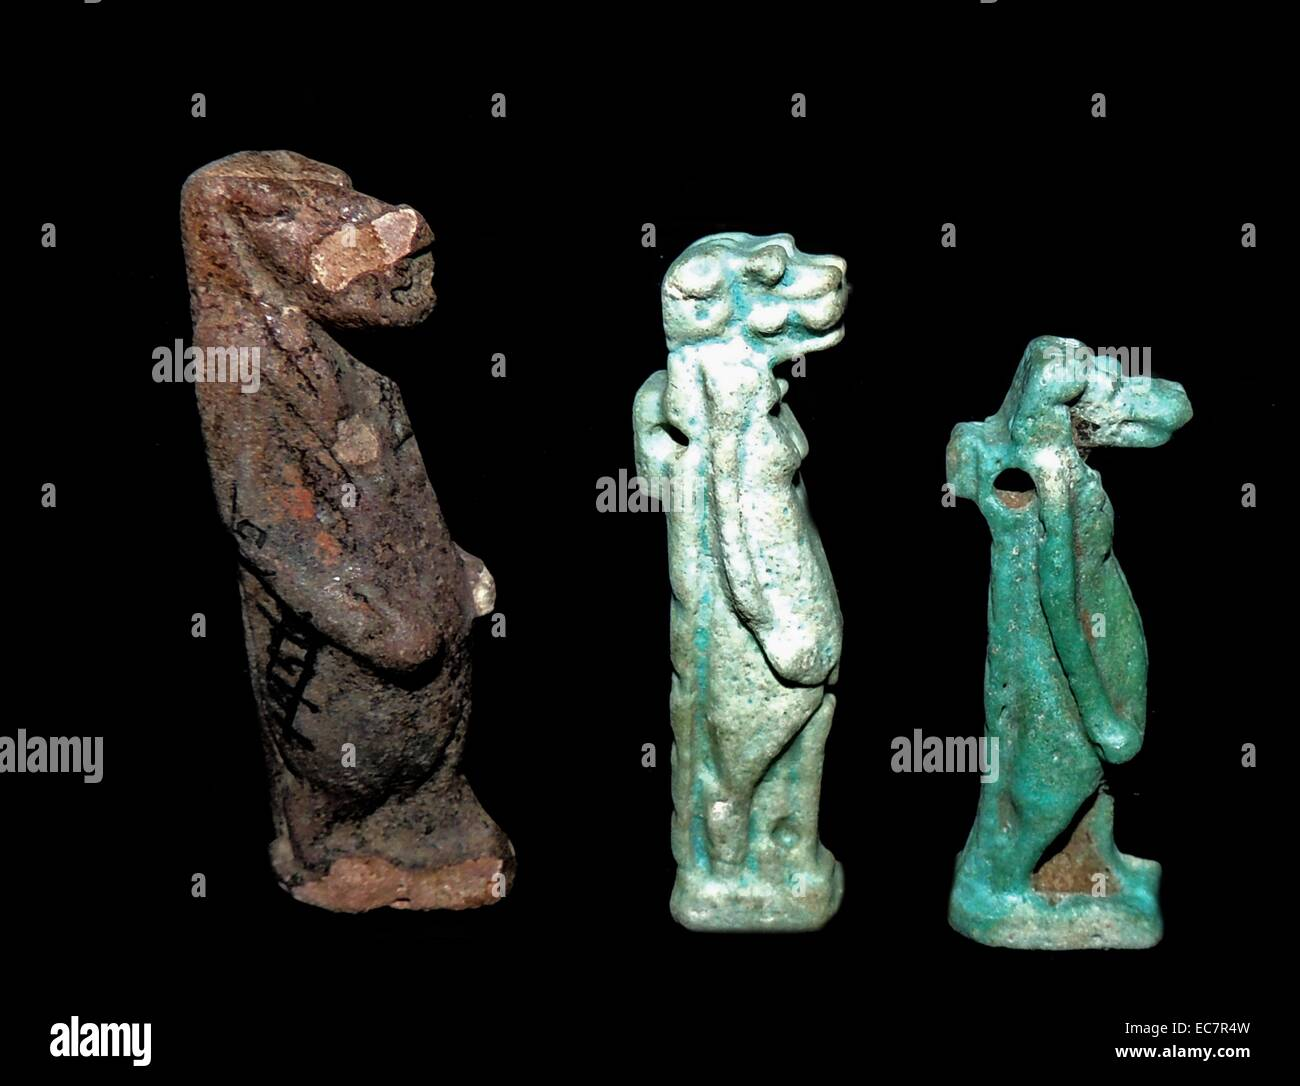 Ancient egyptian figures of gods - Stock Image